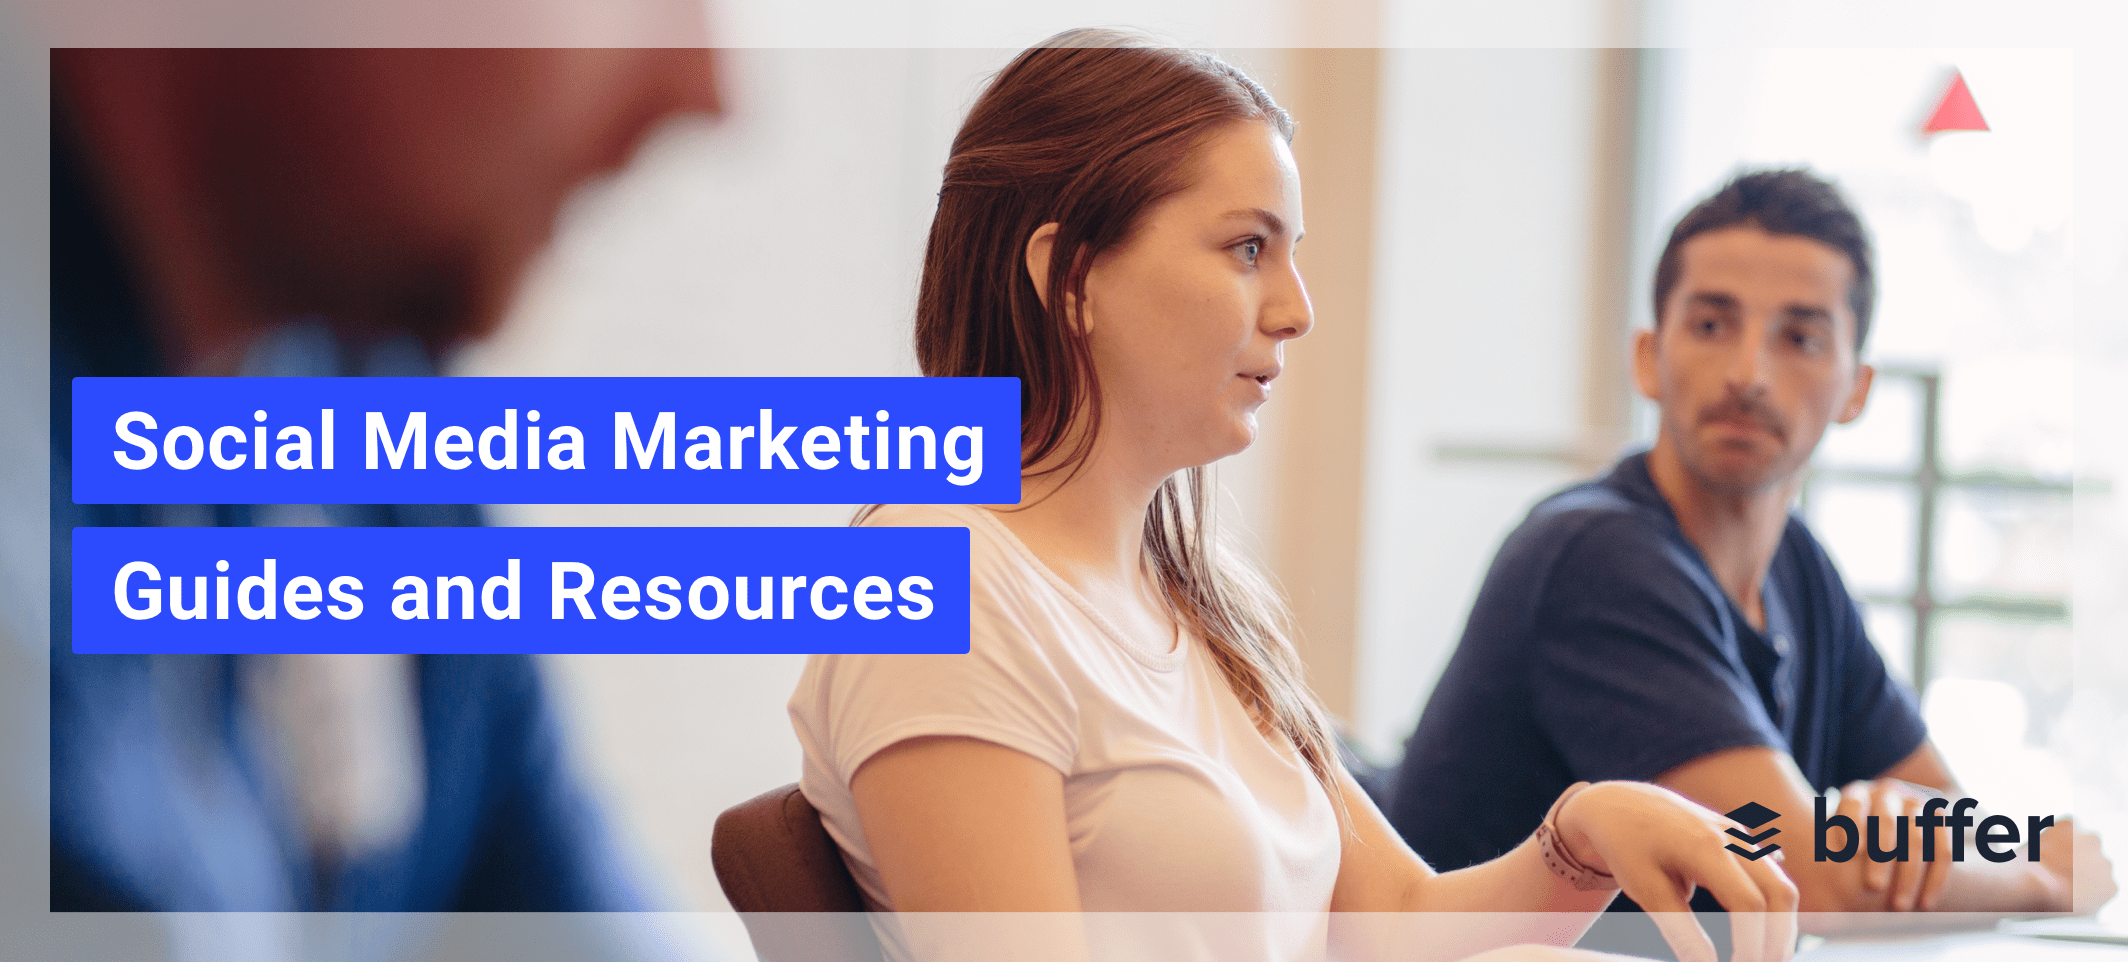 Social media marketing guides and resources